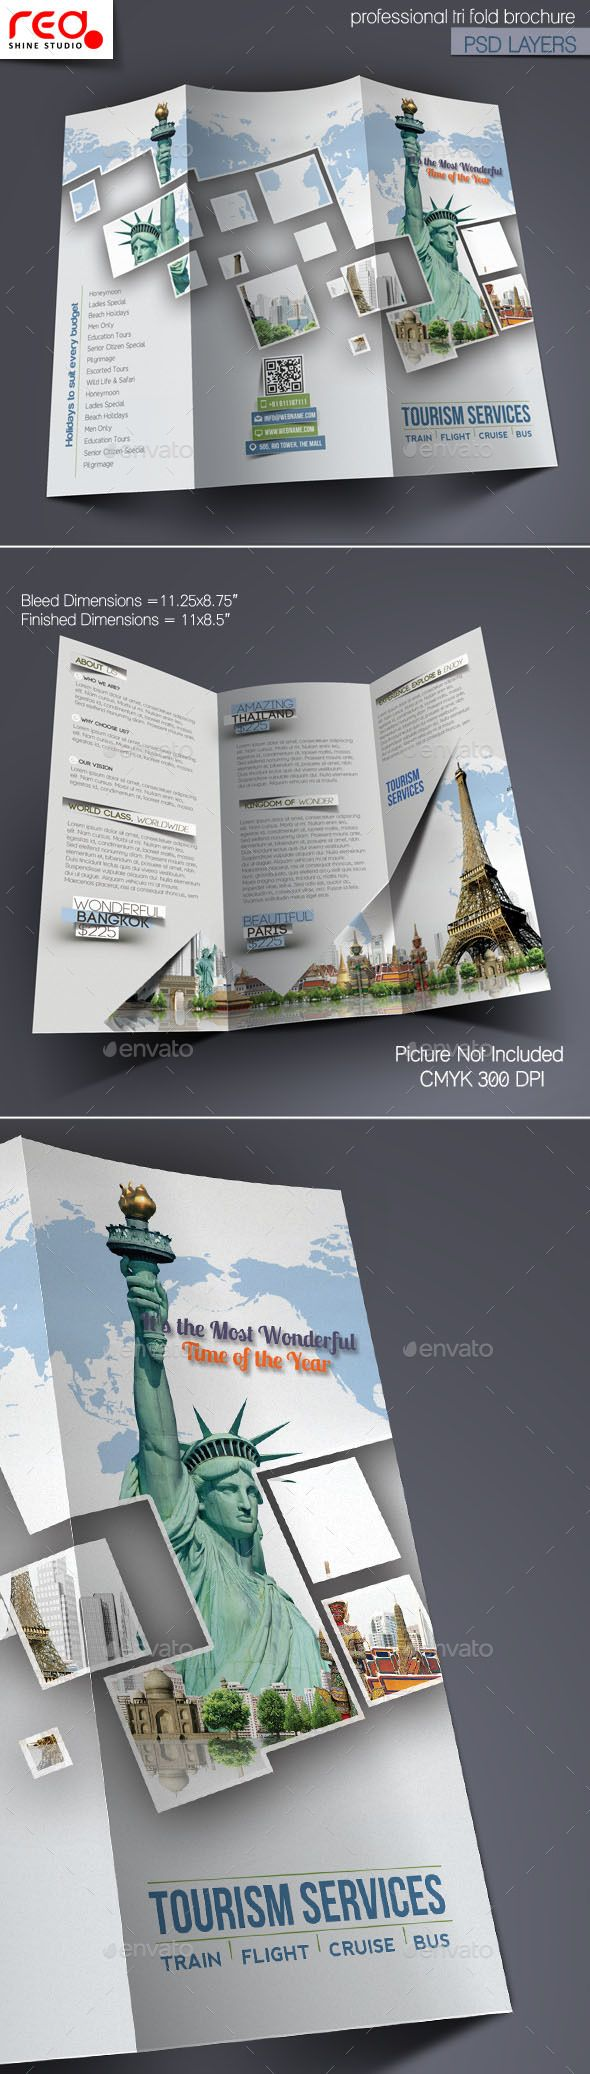 Tourism Service Trifold Brochure Template | Tri fold ...